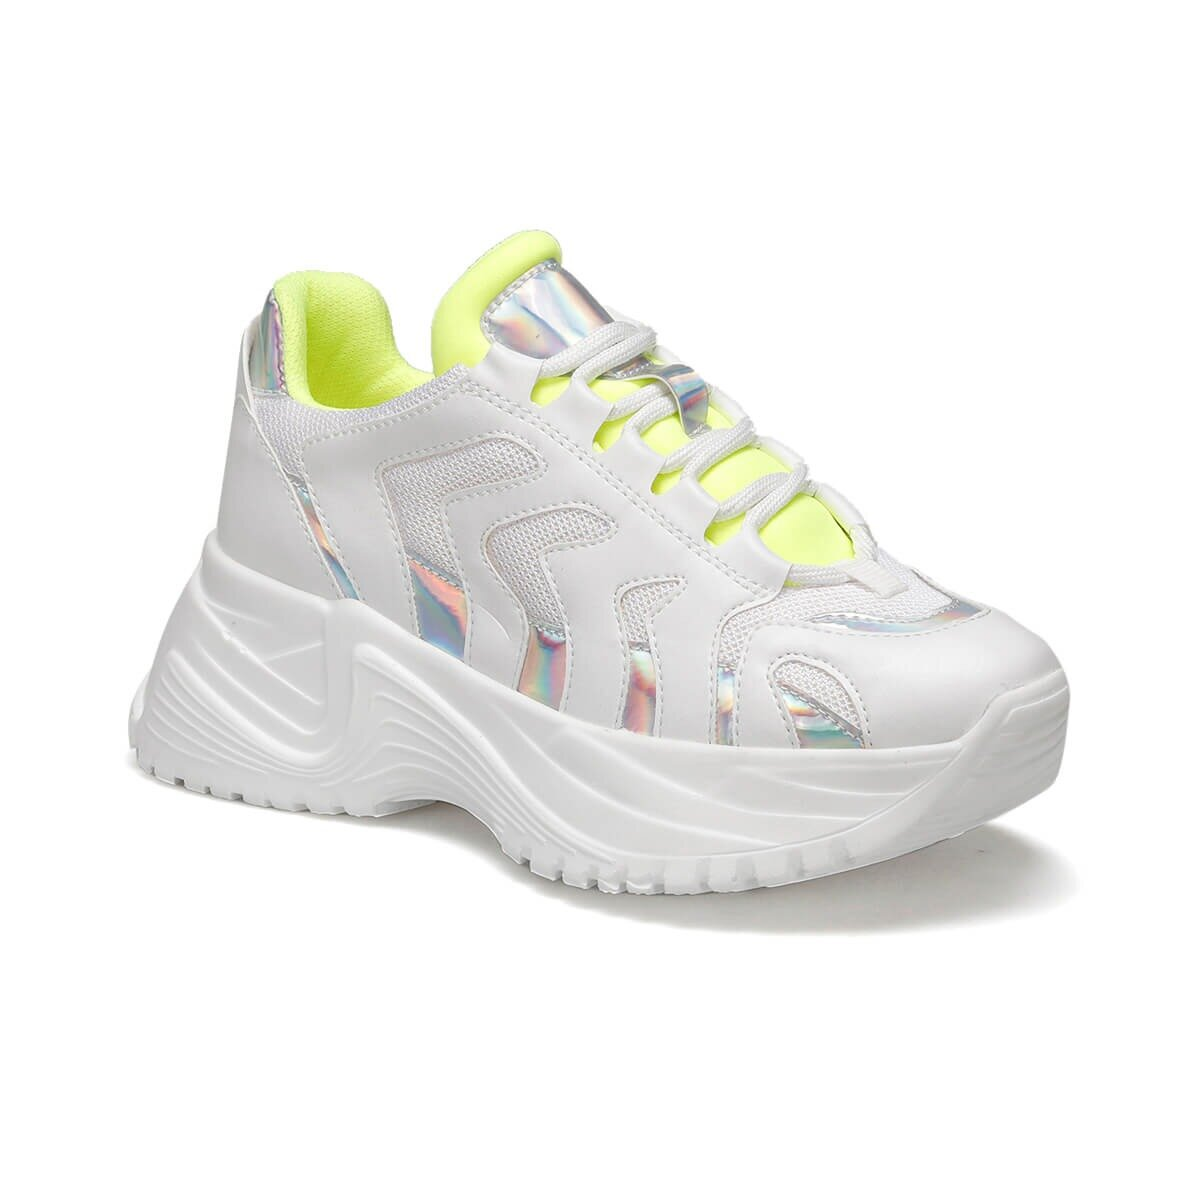 FLO BORLY White Women 'S Sneaker Shoes BUTIGO